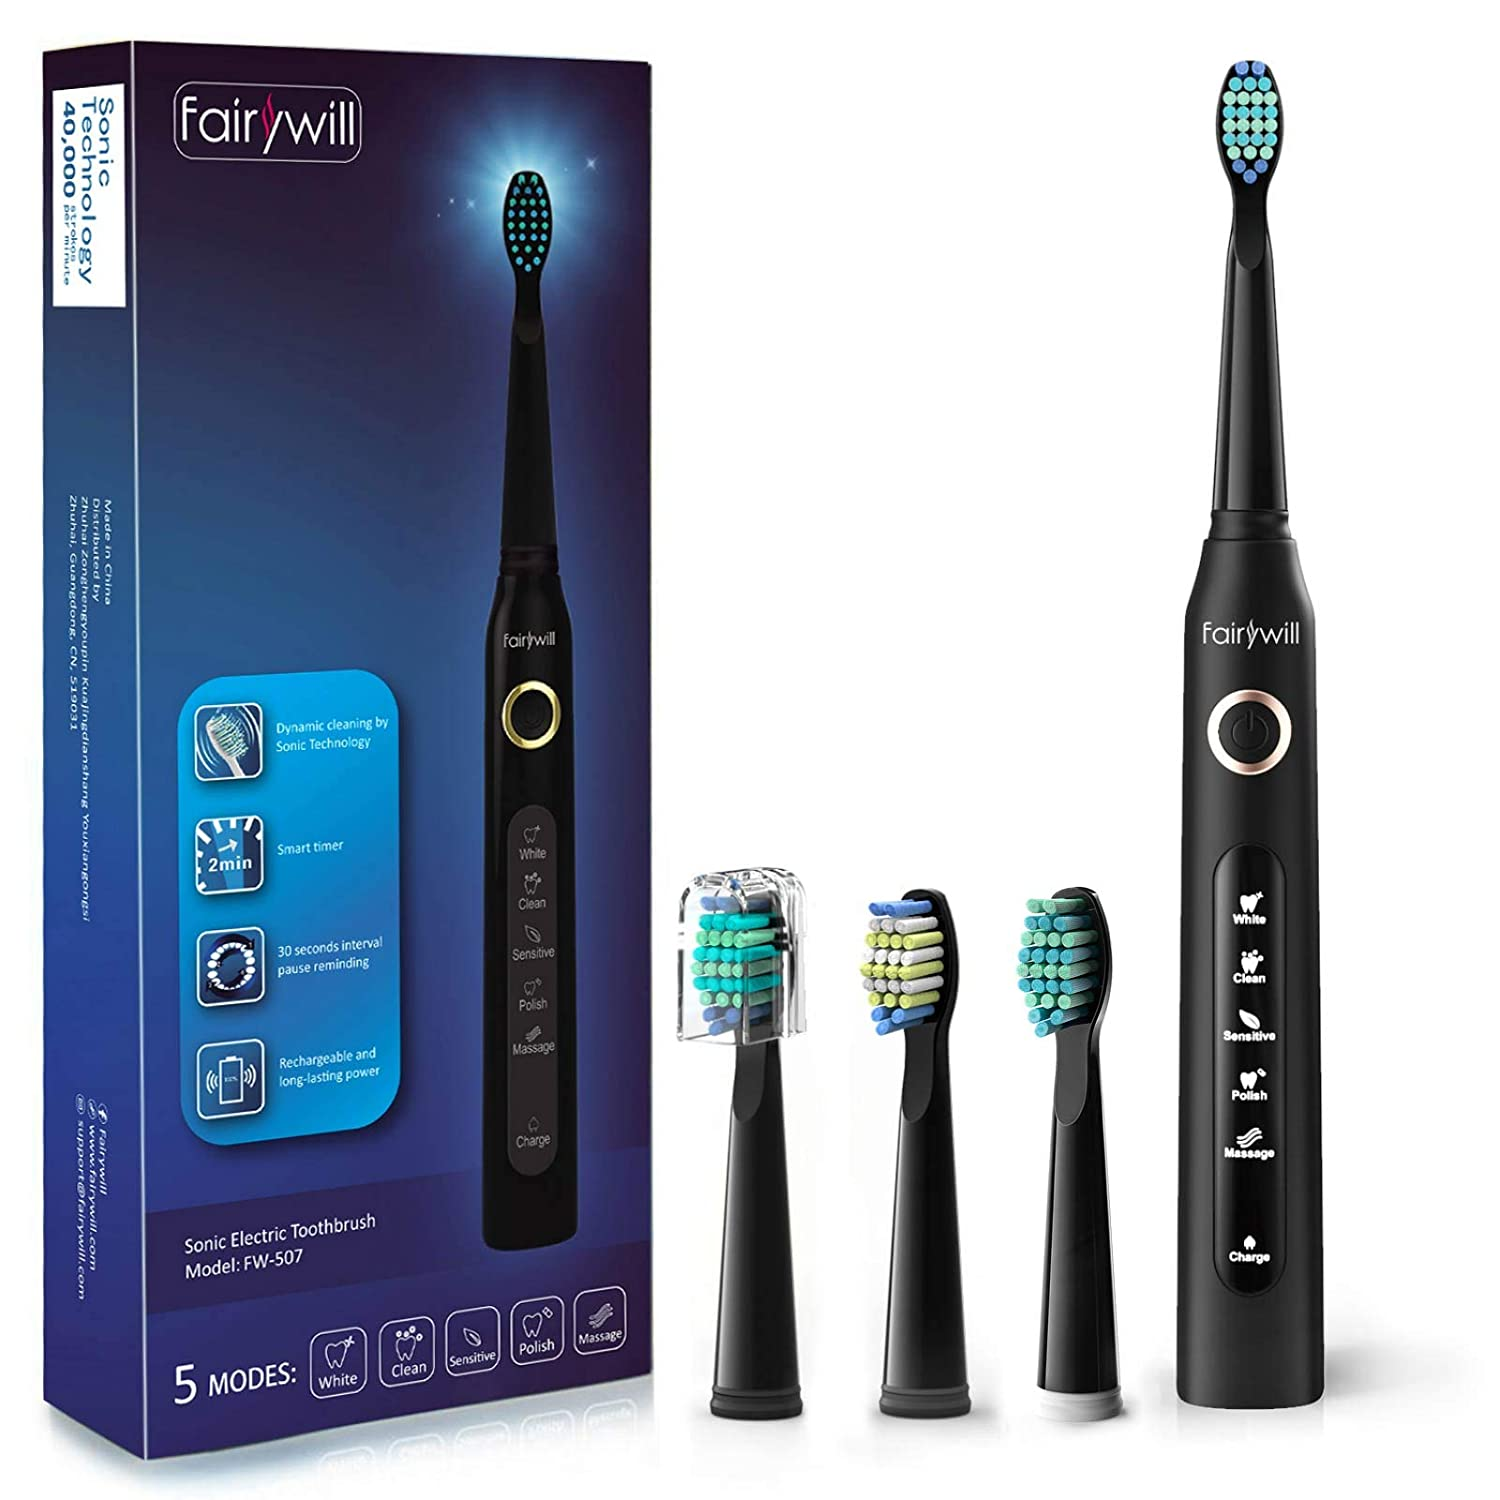 Fairywill Electric Toothbrush Powerful Sonic Cleaning - ADA Accepted Rechargeable Toothbrush with Timer, 5 Modes, 4 Brush Heads, 4 Hr Charge Last 30 Days Whitening Toothbrush for Adults and Kids Black: Beauty